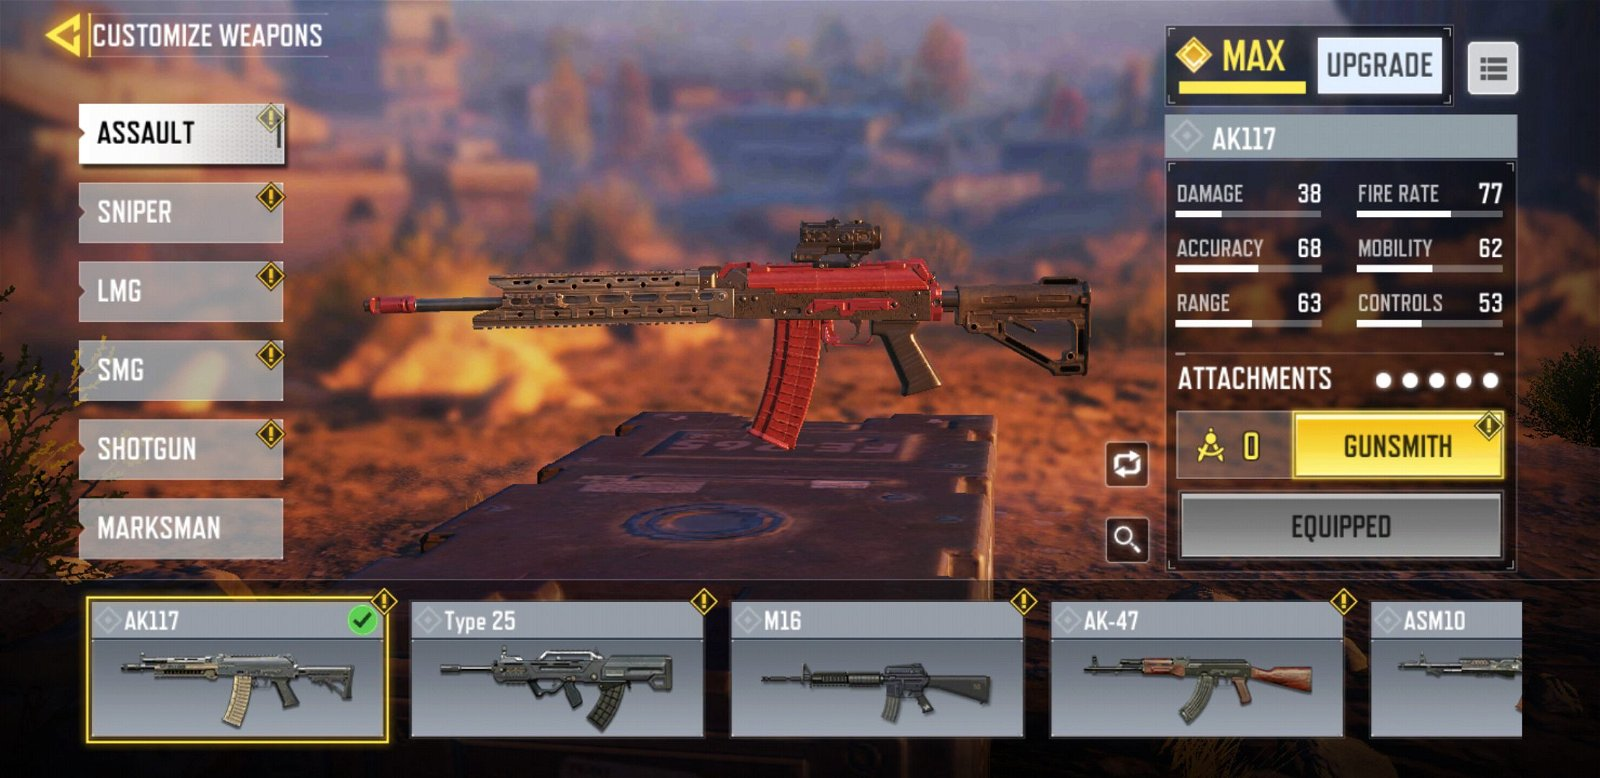 Best Assault Rifles in COD Mobile